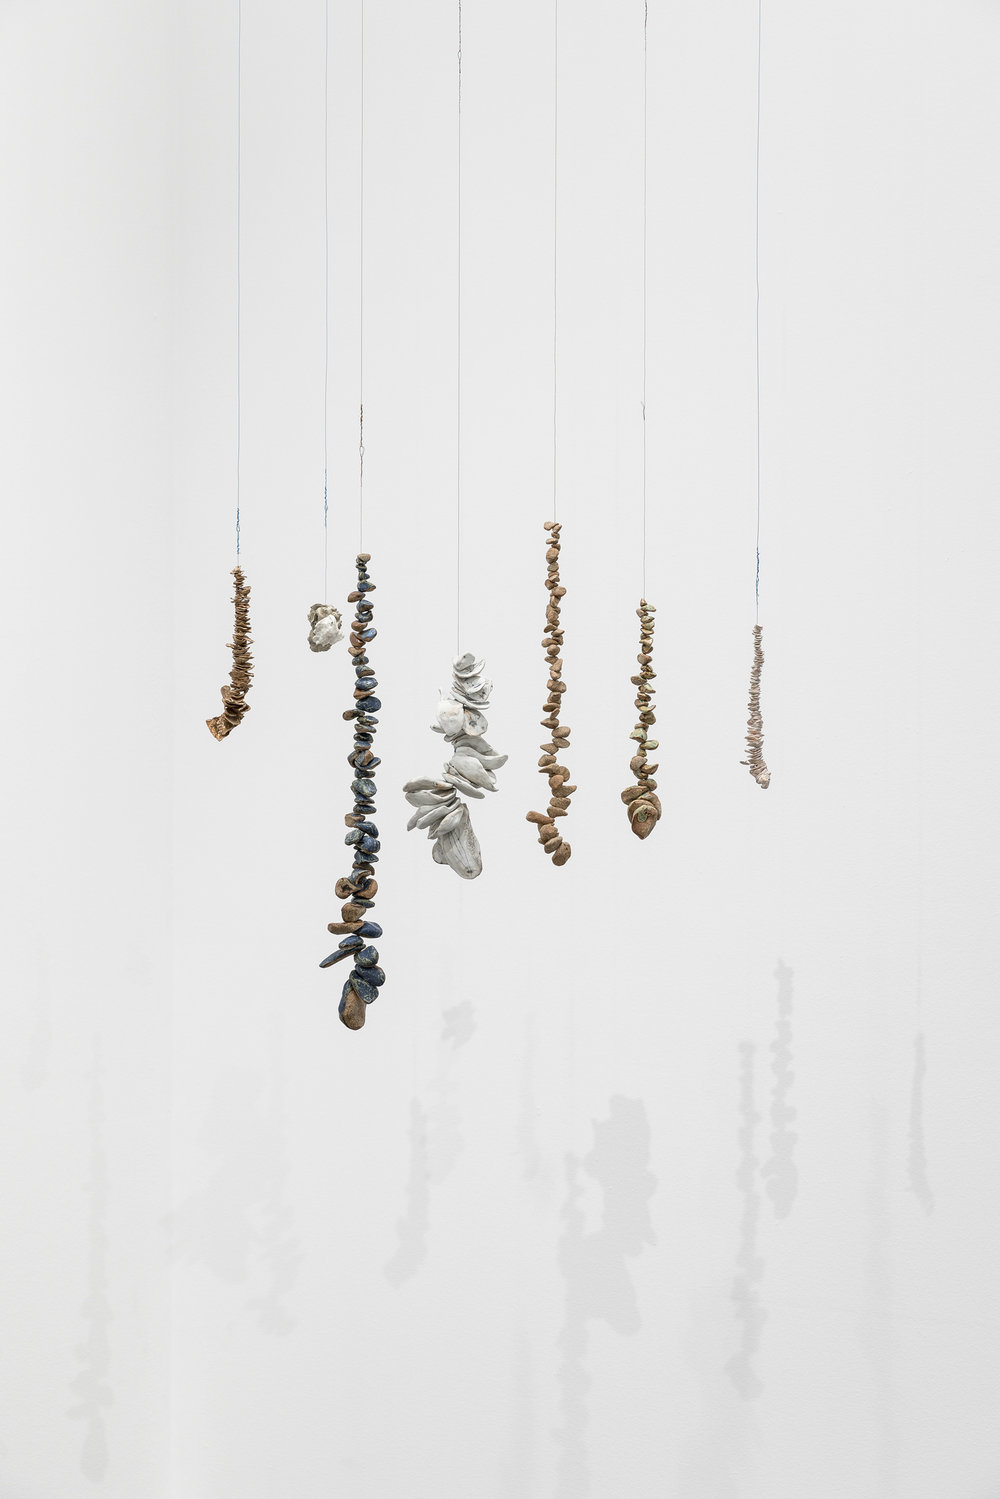 Dwelling-Poetically-at-Australian-Centre-for-Contemporary-Art-Works-43.jpg